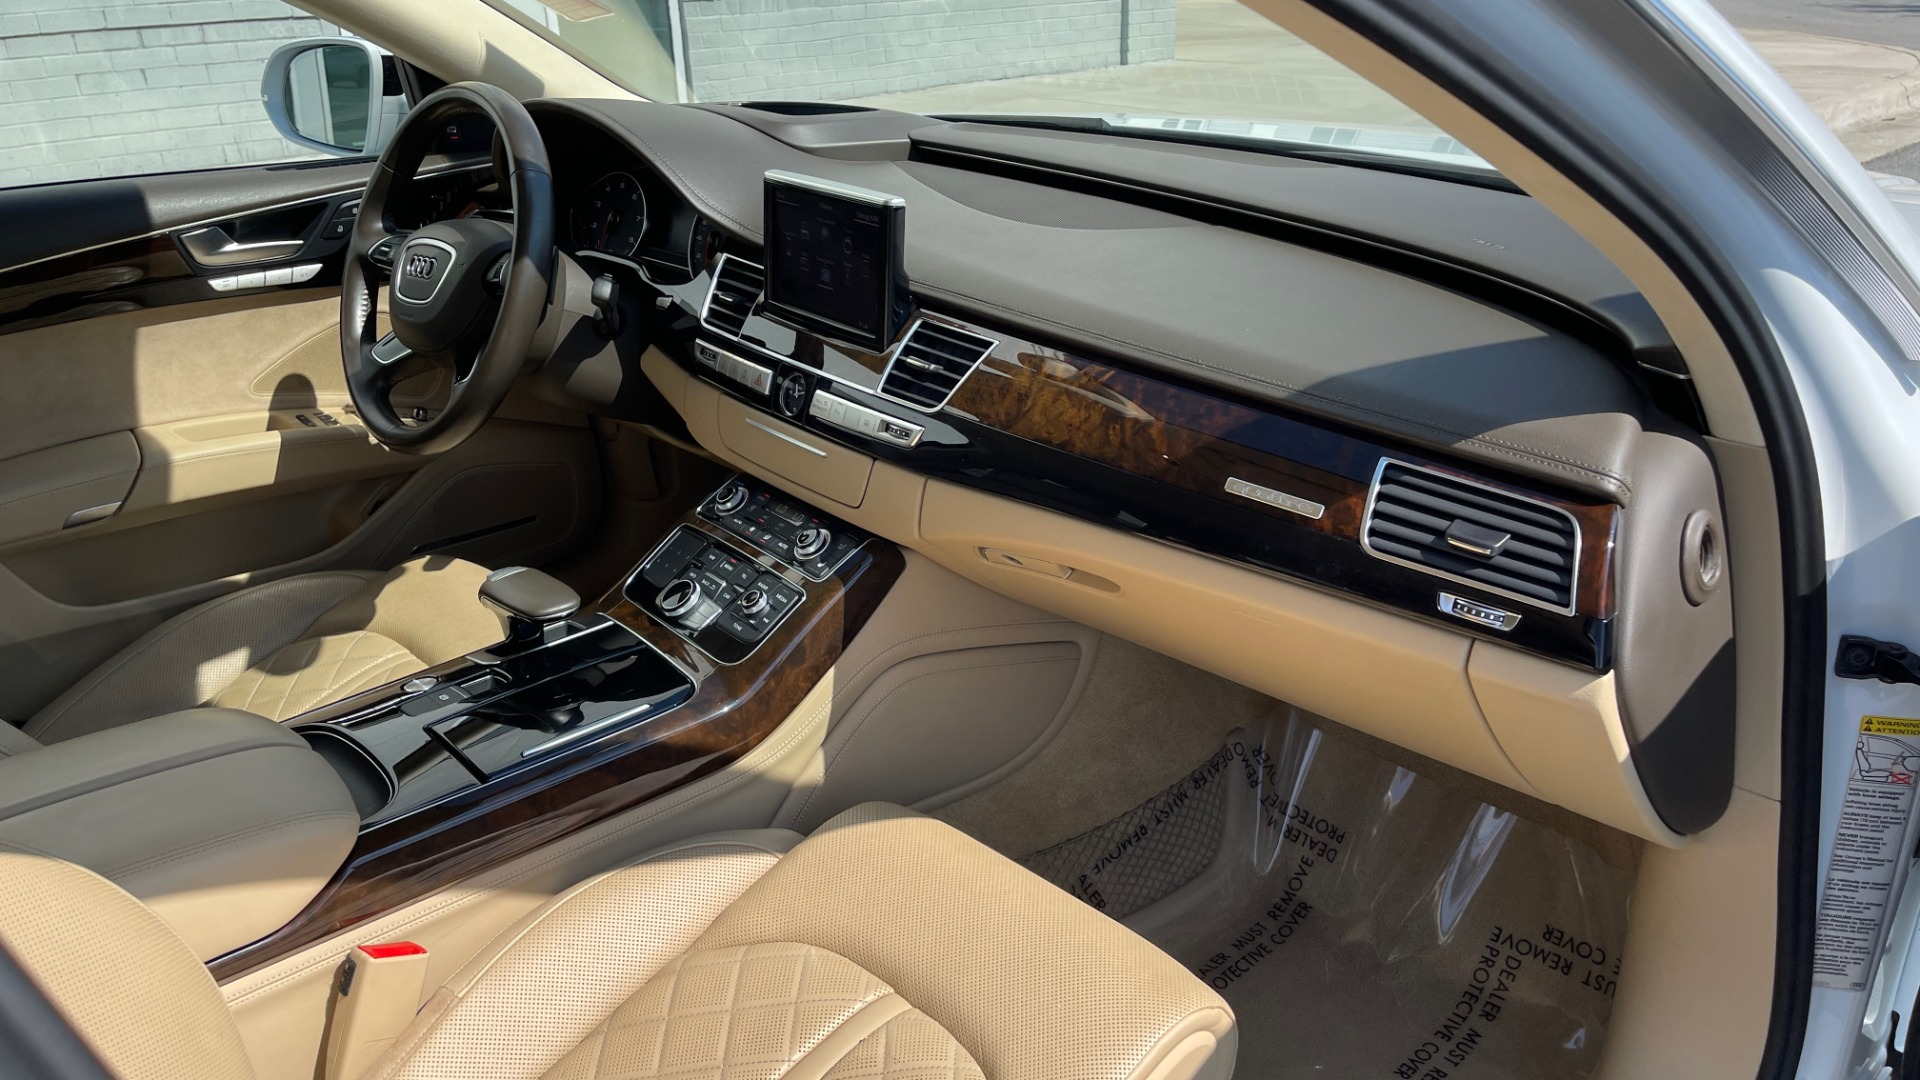 Used 2018 Audi A8 L SPORT 4.0T / EXECUTIVE PKG / NAV / BOSE / SUNROOF / REARVIEW for sale Sold at Formula Imports in Charlotte NC 28227 81